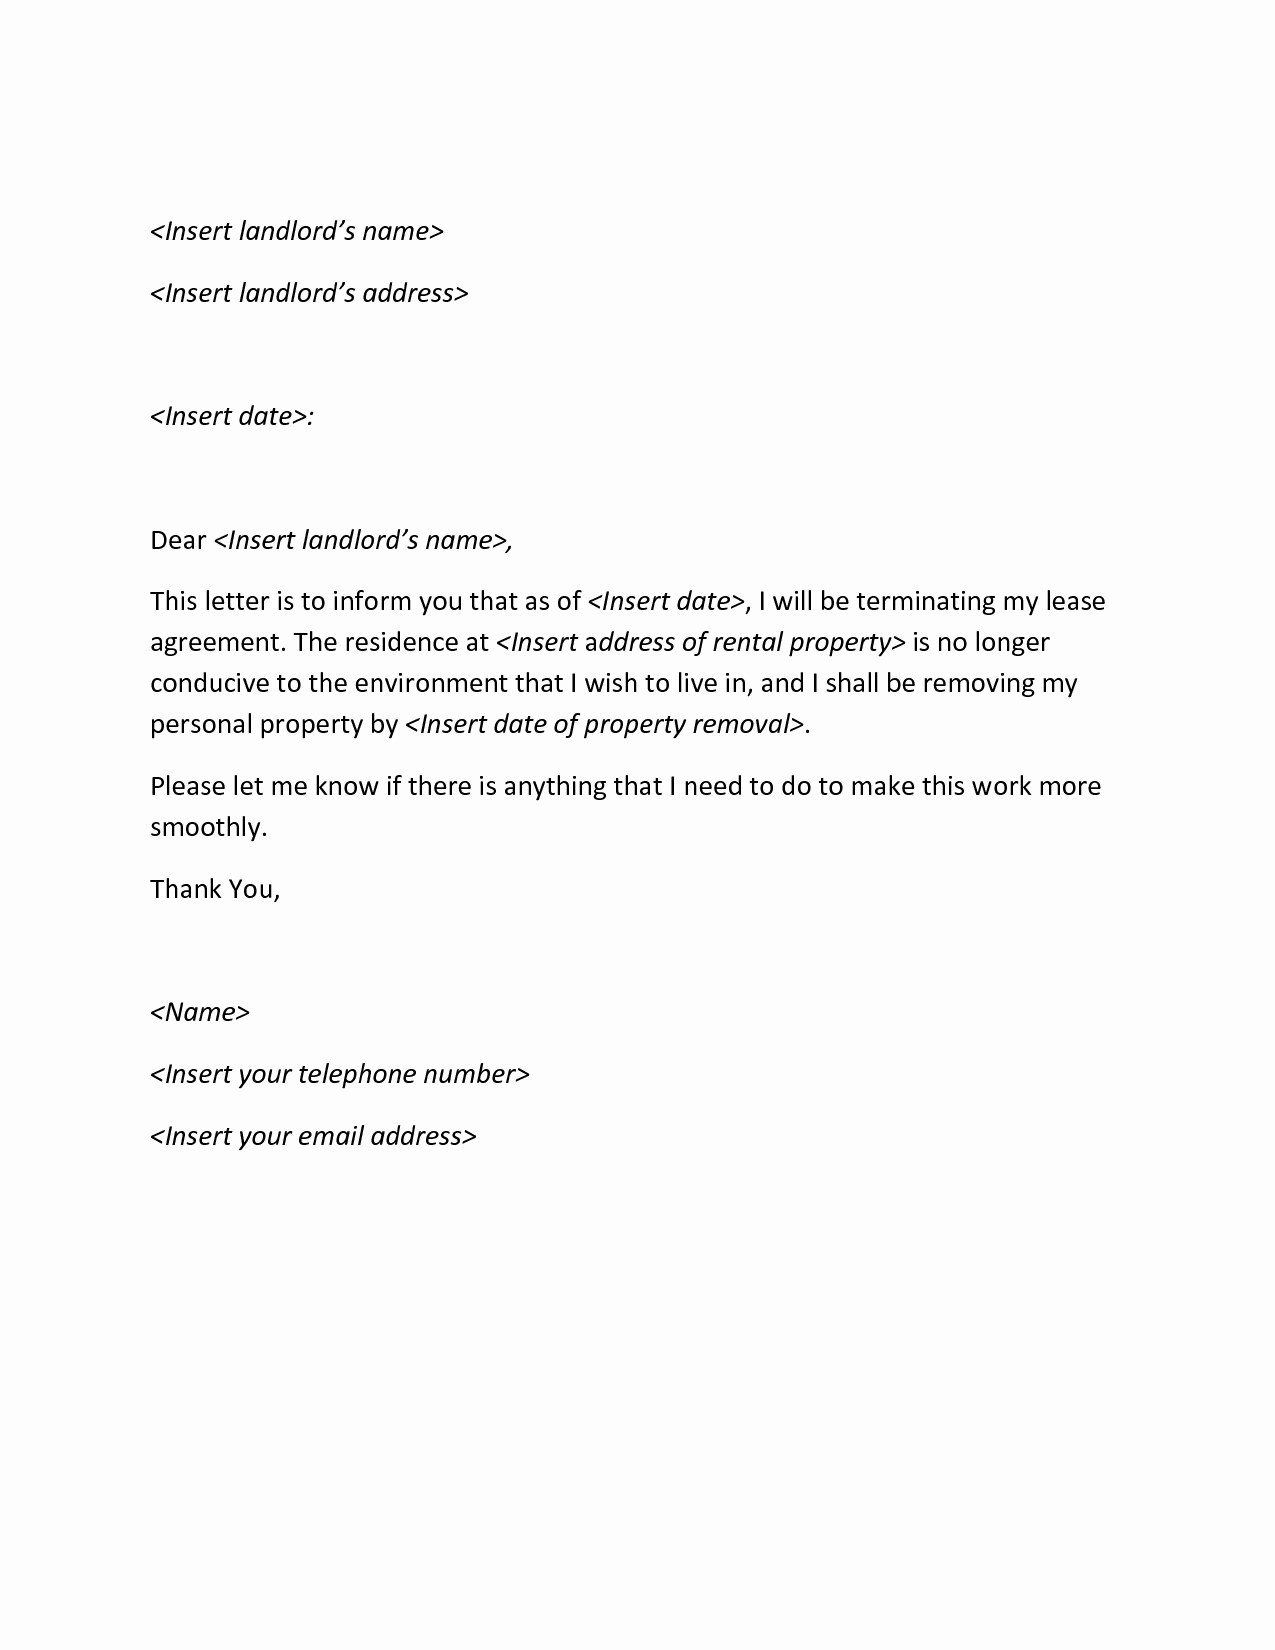 The Best Termination Letter Examples to Inspire You